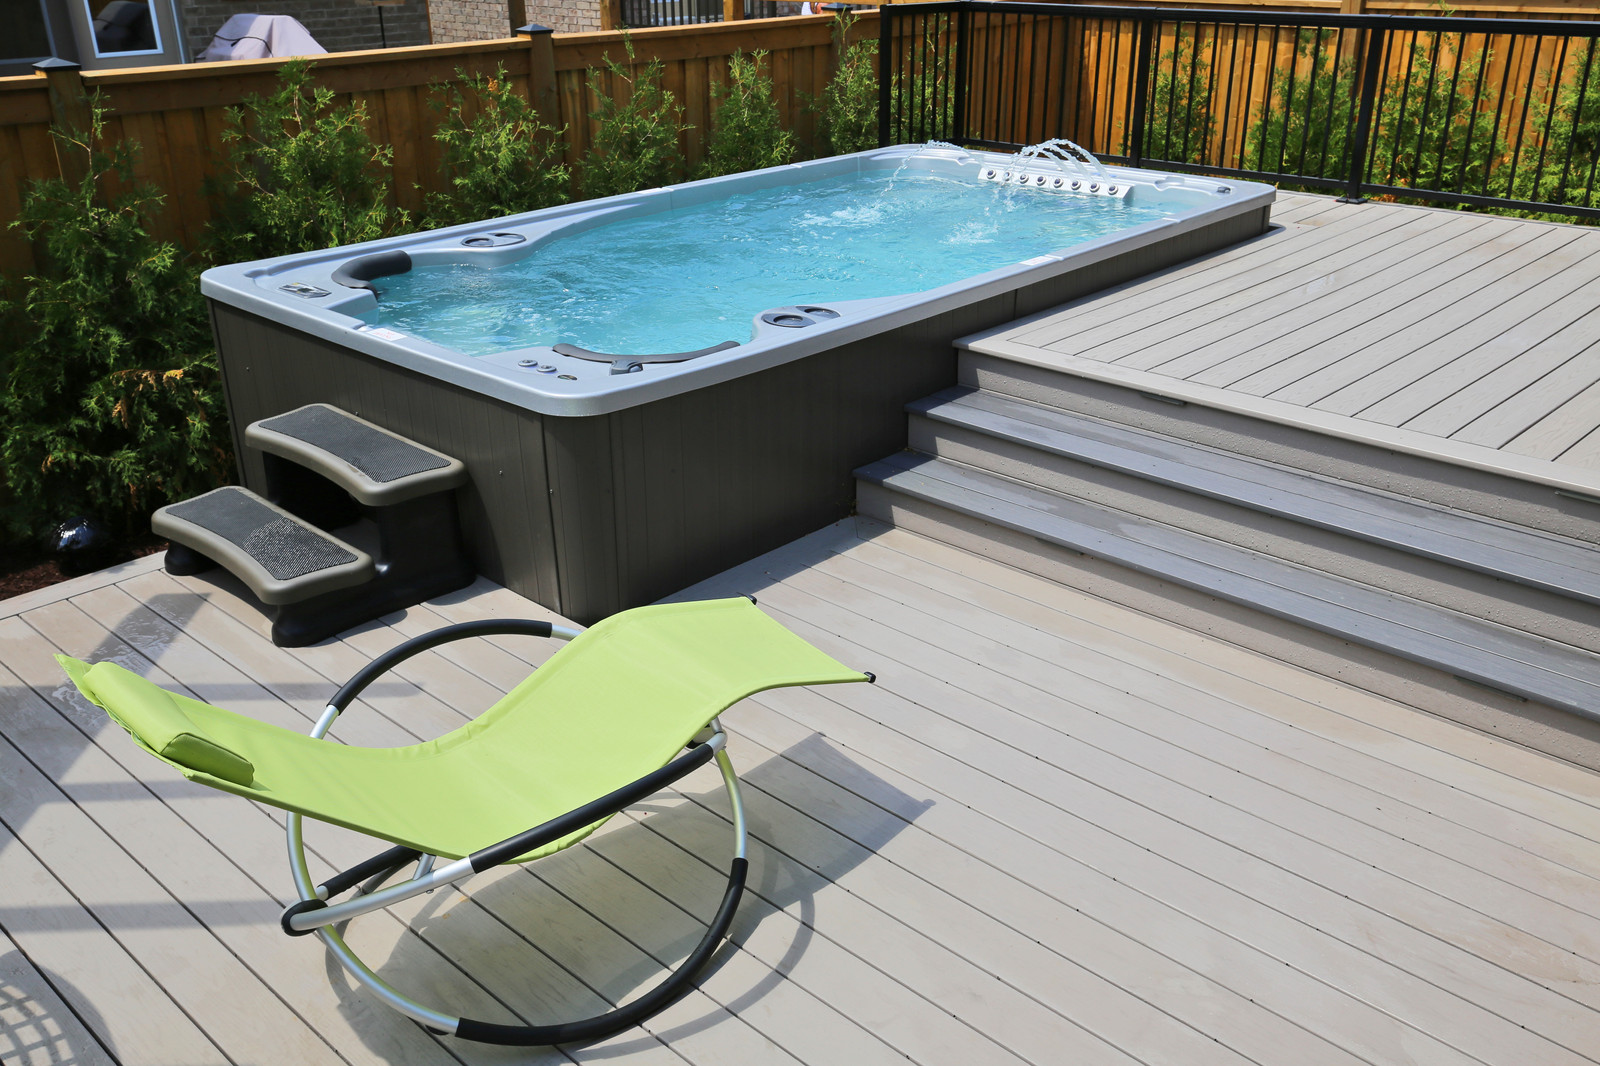 Swim Spa by Hydropool on deck